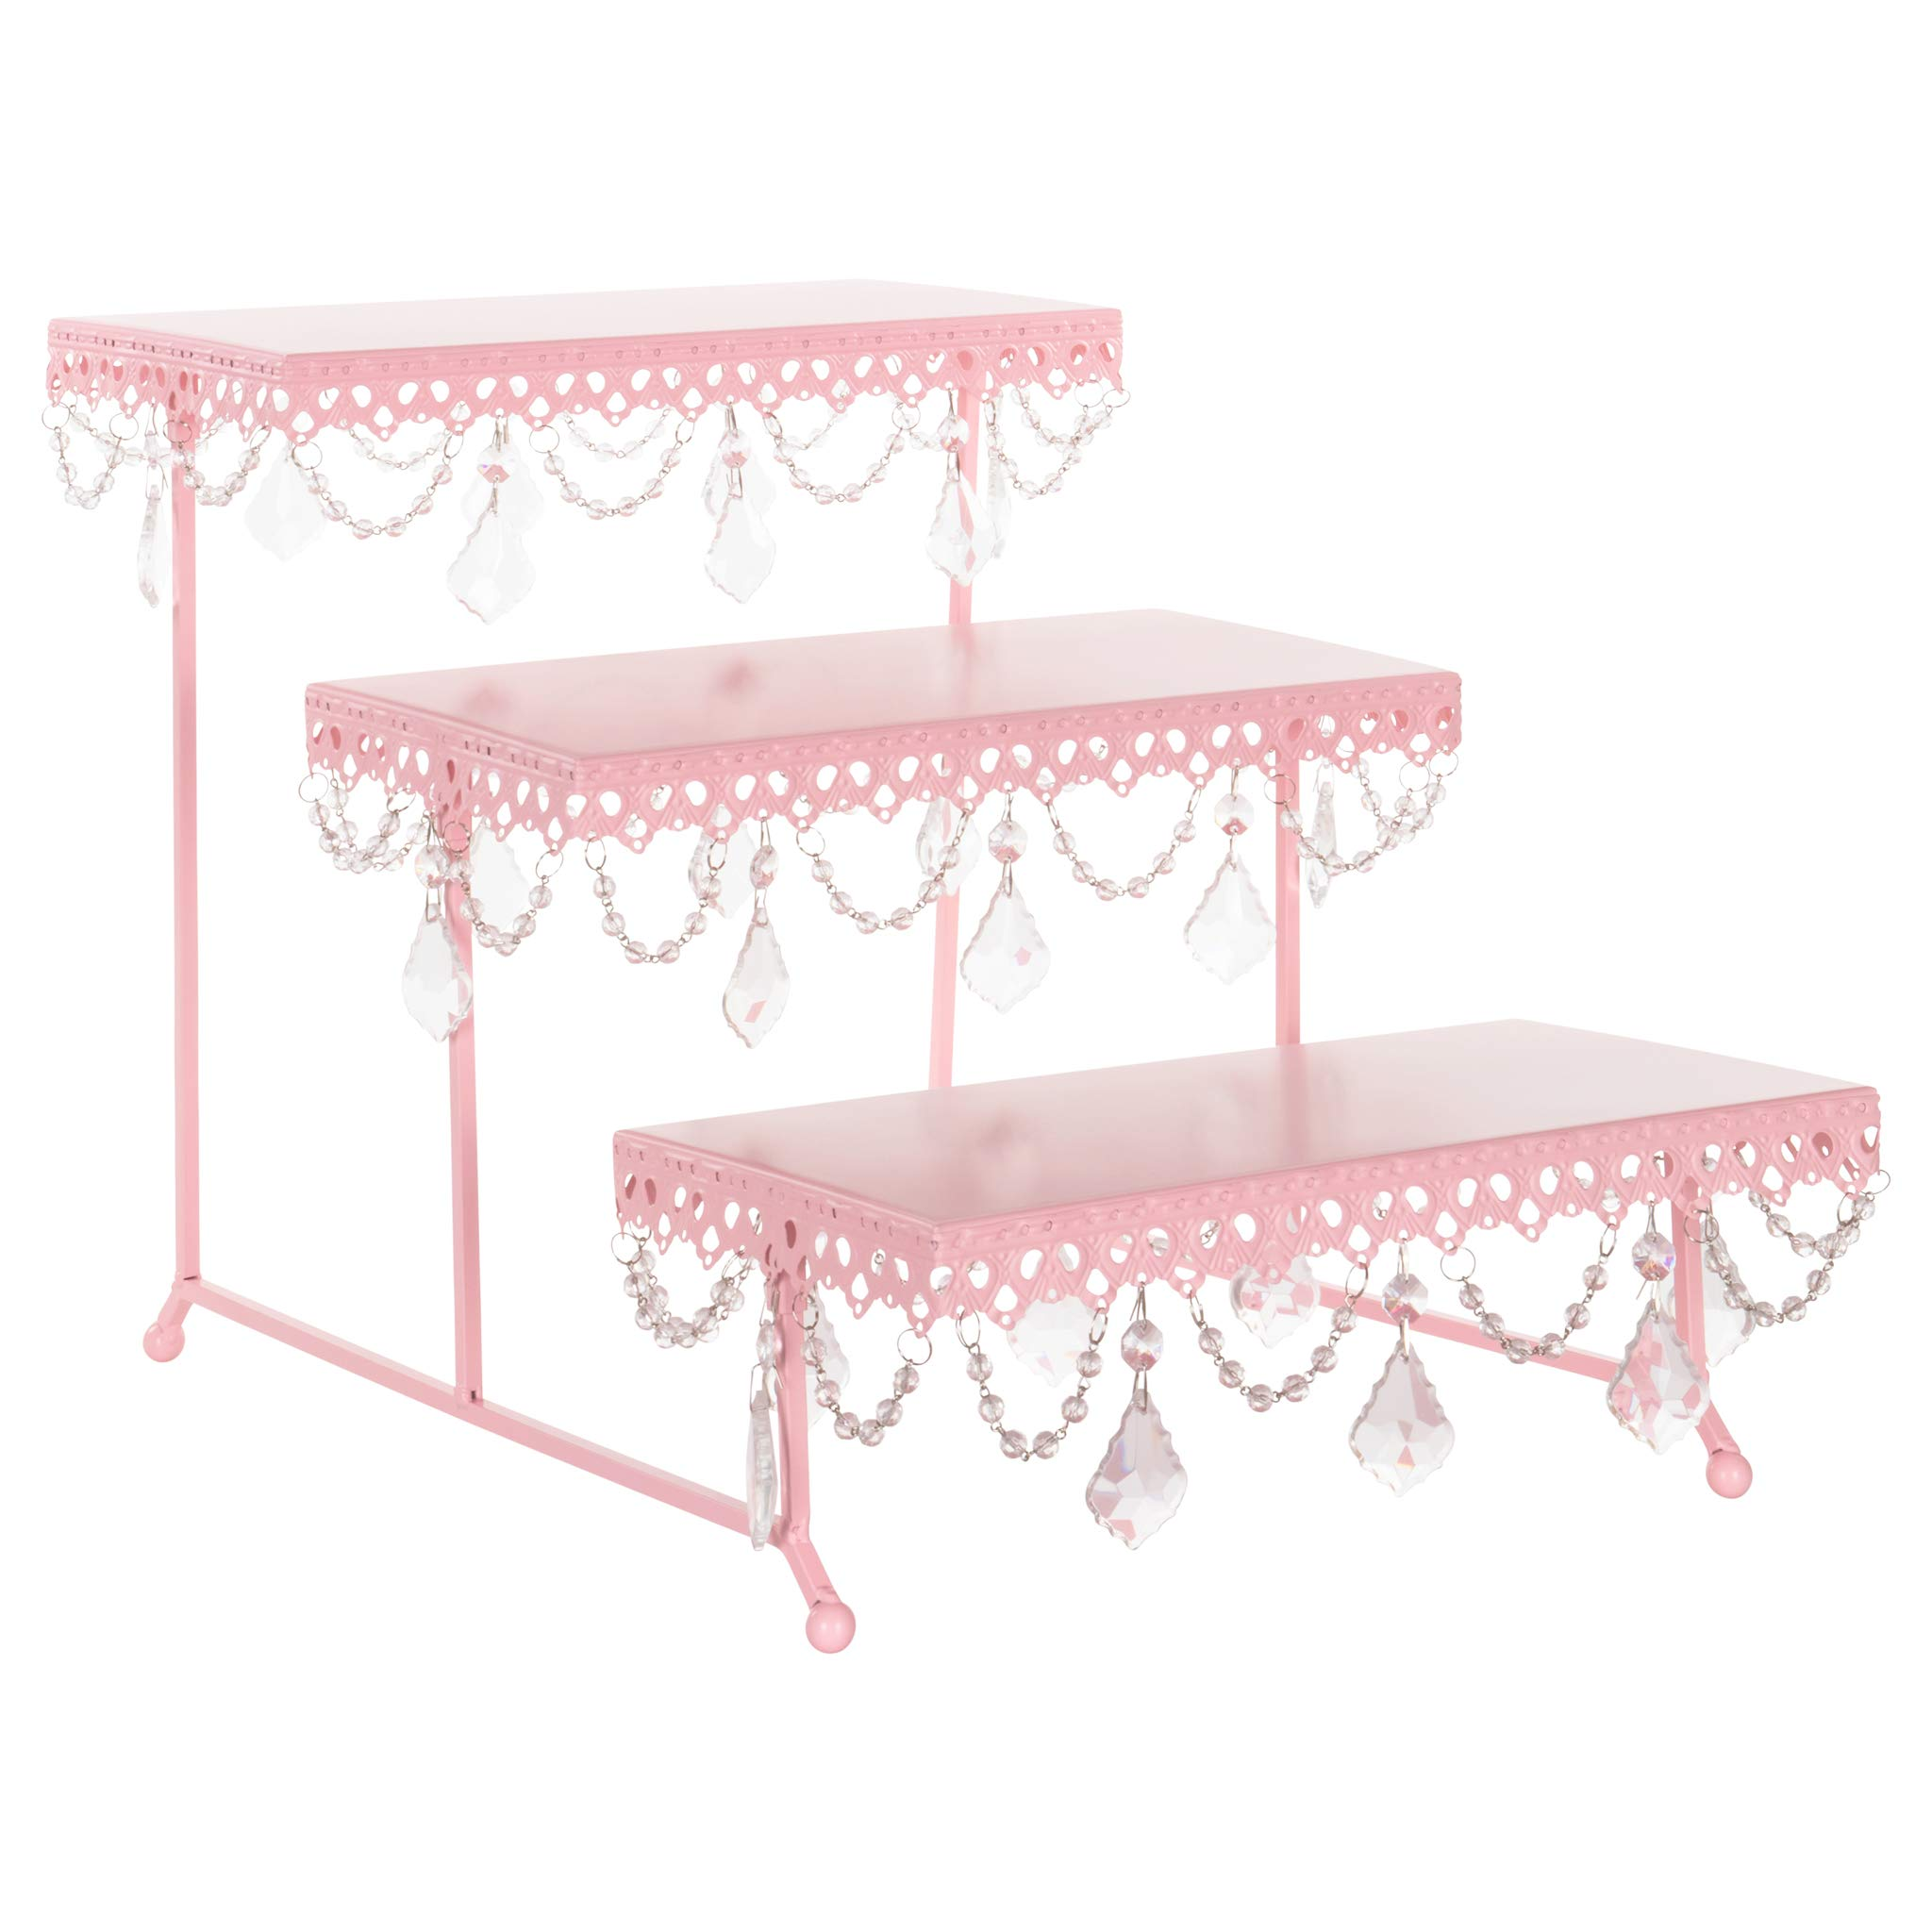 Amalfi Decor 3 Tier Dessert Cupcake Stand, Pastry Candy Cake Cookie Serving Platter for Wedding Event Birthday Party, Rectangular Metal Plate Tower Tray Holder with Crystals, Pink by Amalfi Décor